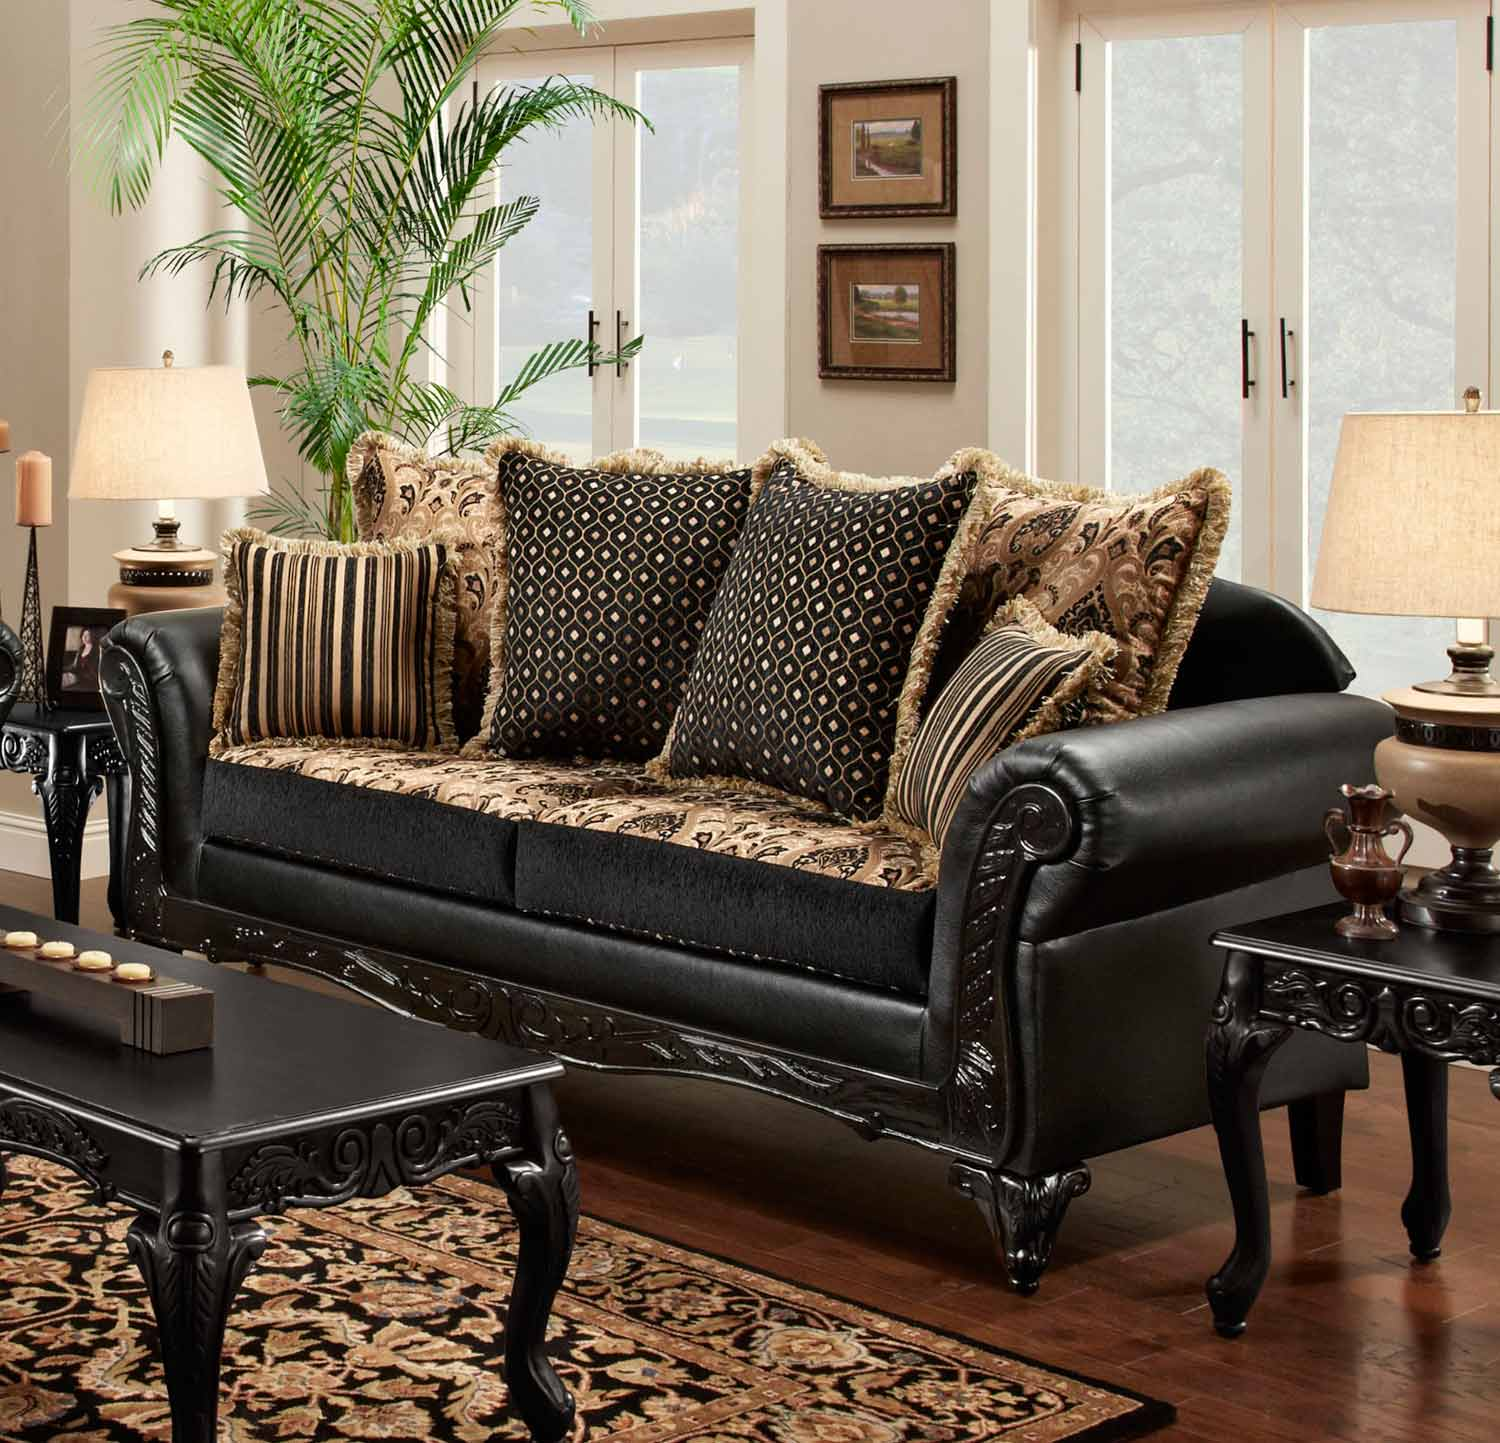 Chelsea Home Gwendolyn Sofa - Monte Carlo Ebony/Bi-Cast Ebony